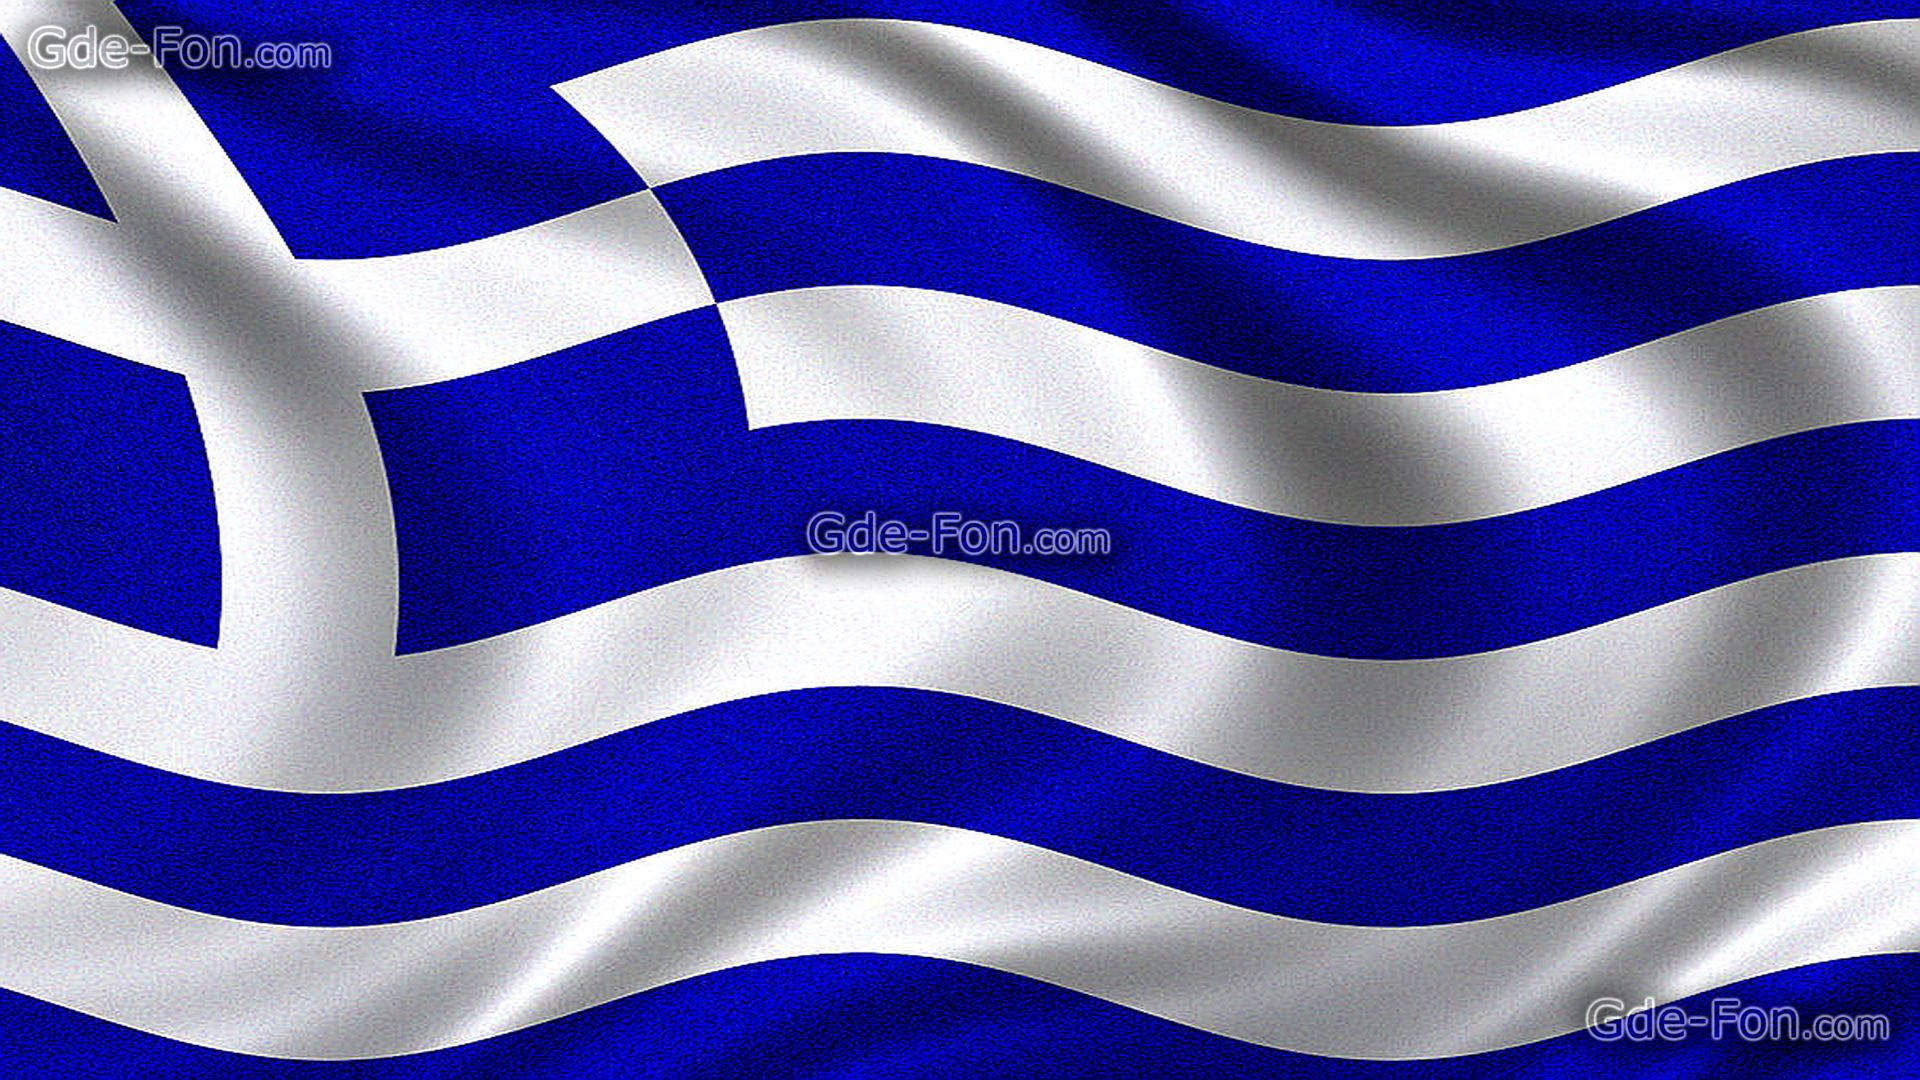 Download wallpaper Flag of Greece Greek flag Hellenic Republic 1920x1080